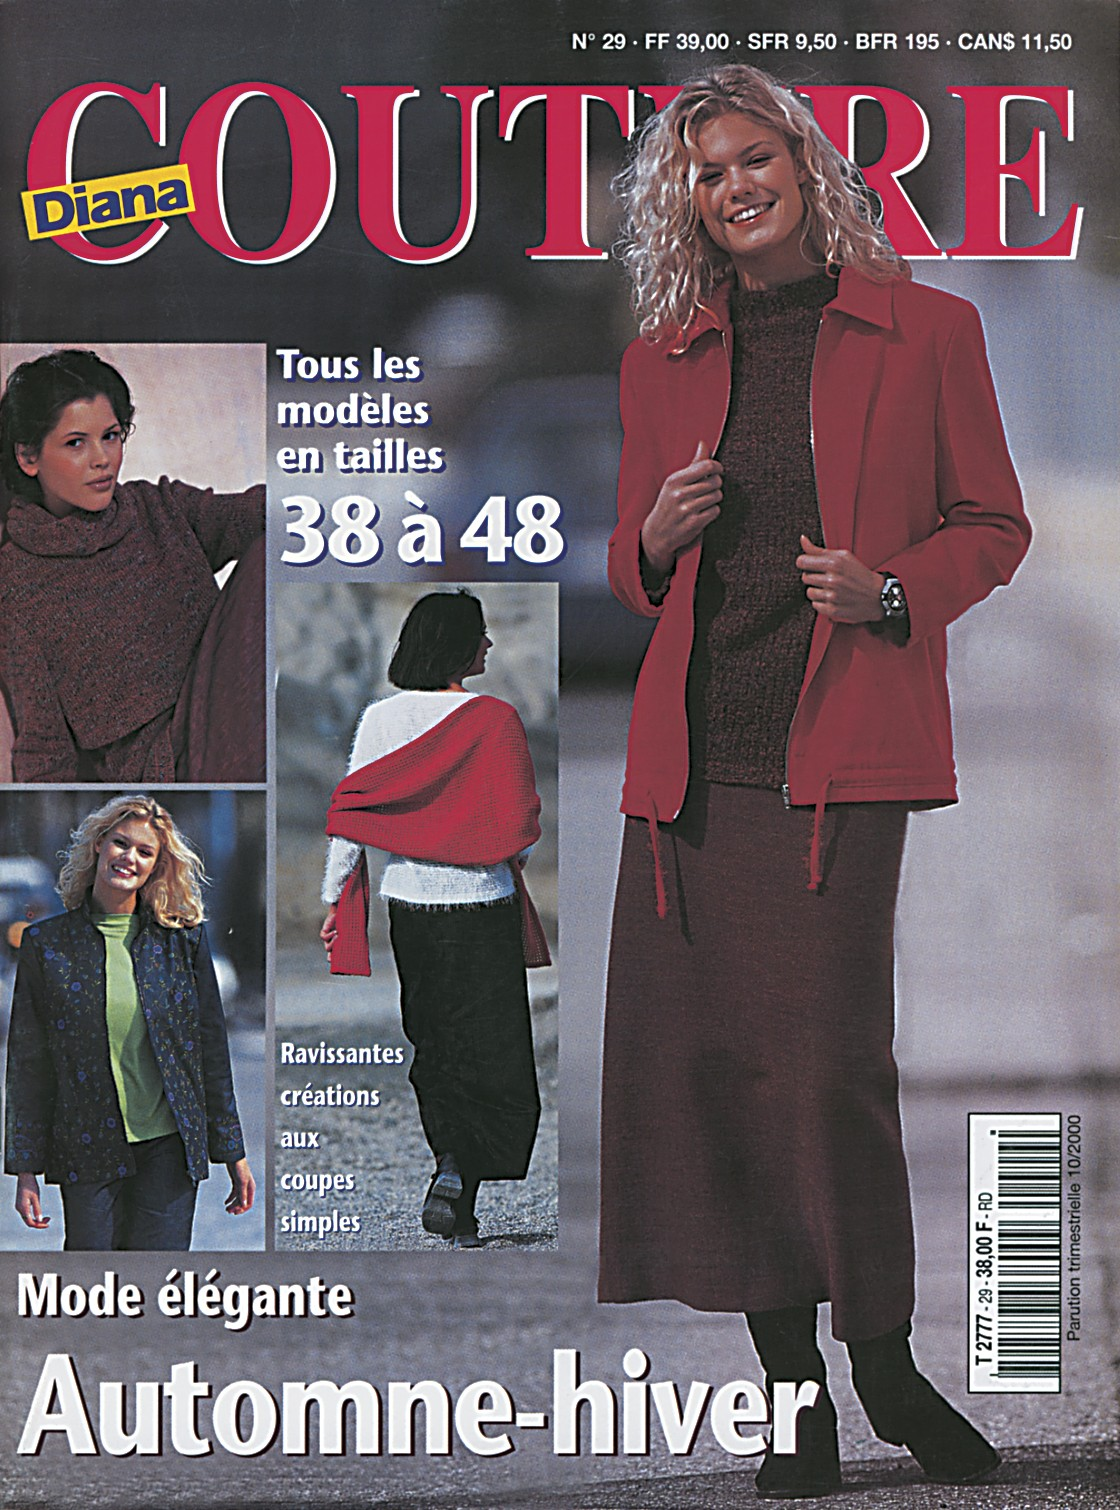 Diana Couture N°29 Automne-hiver